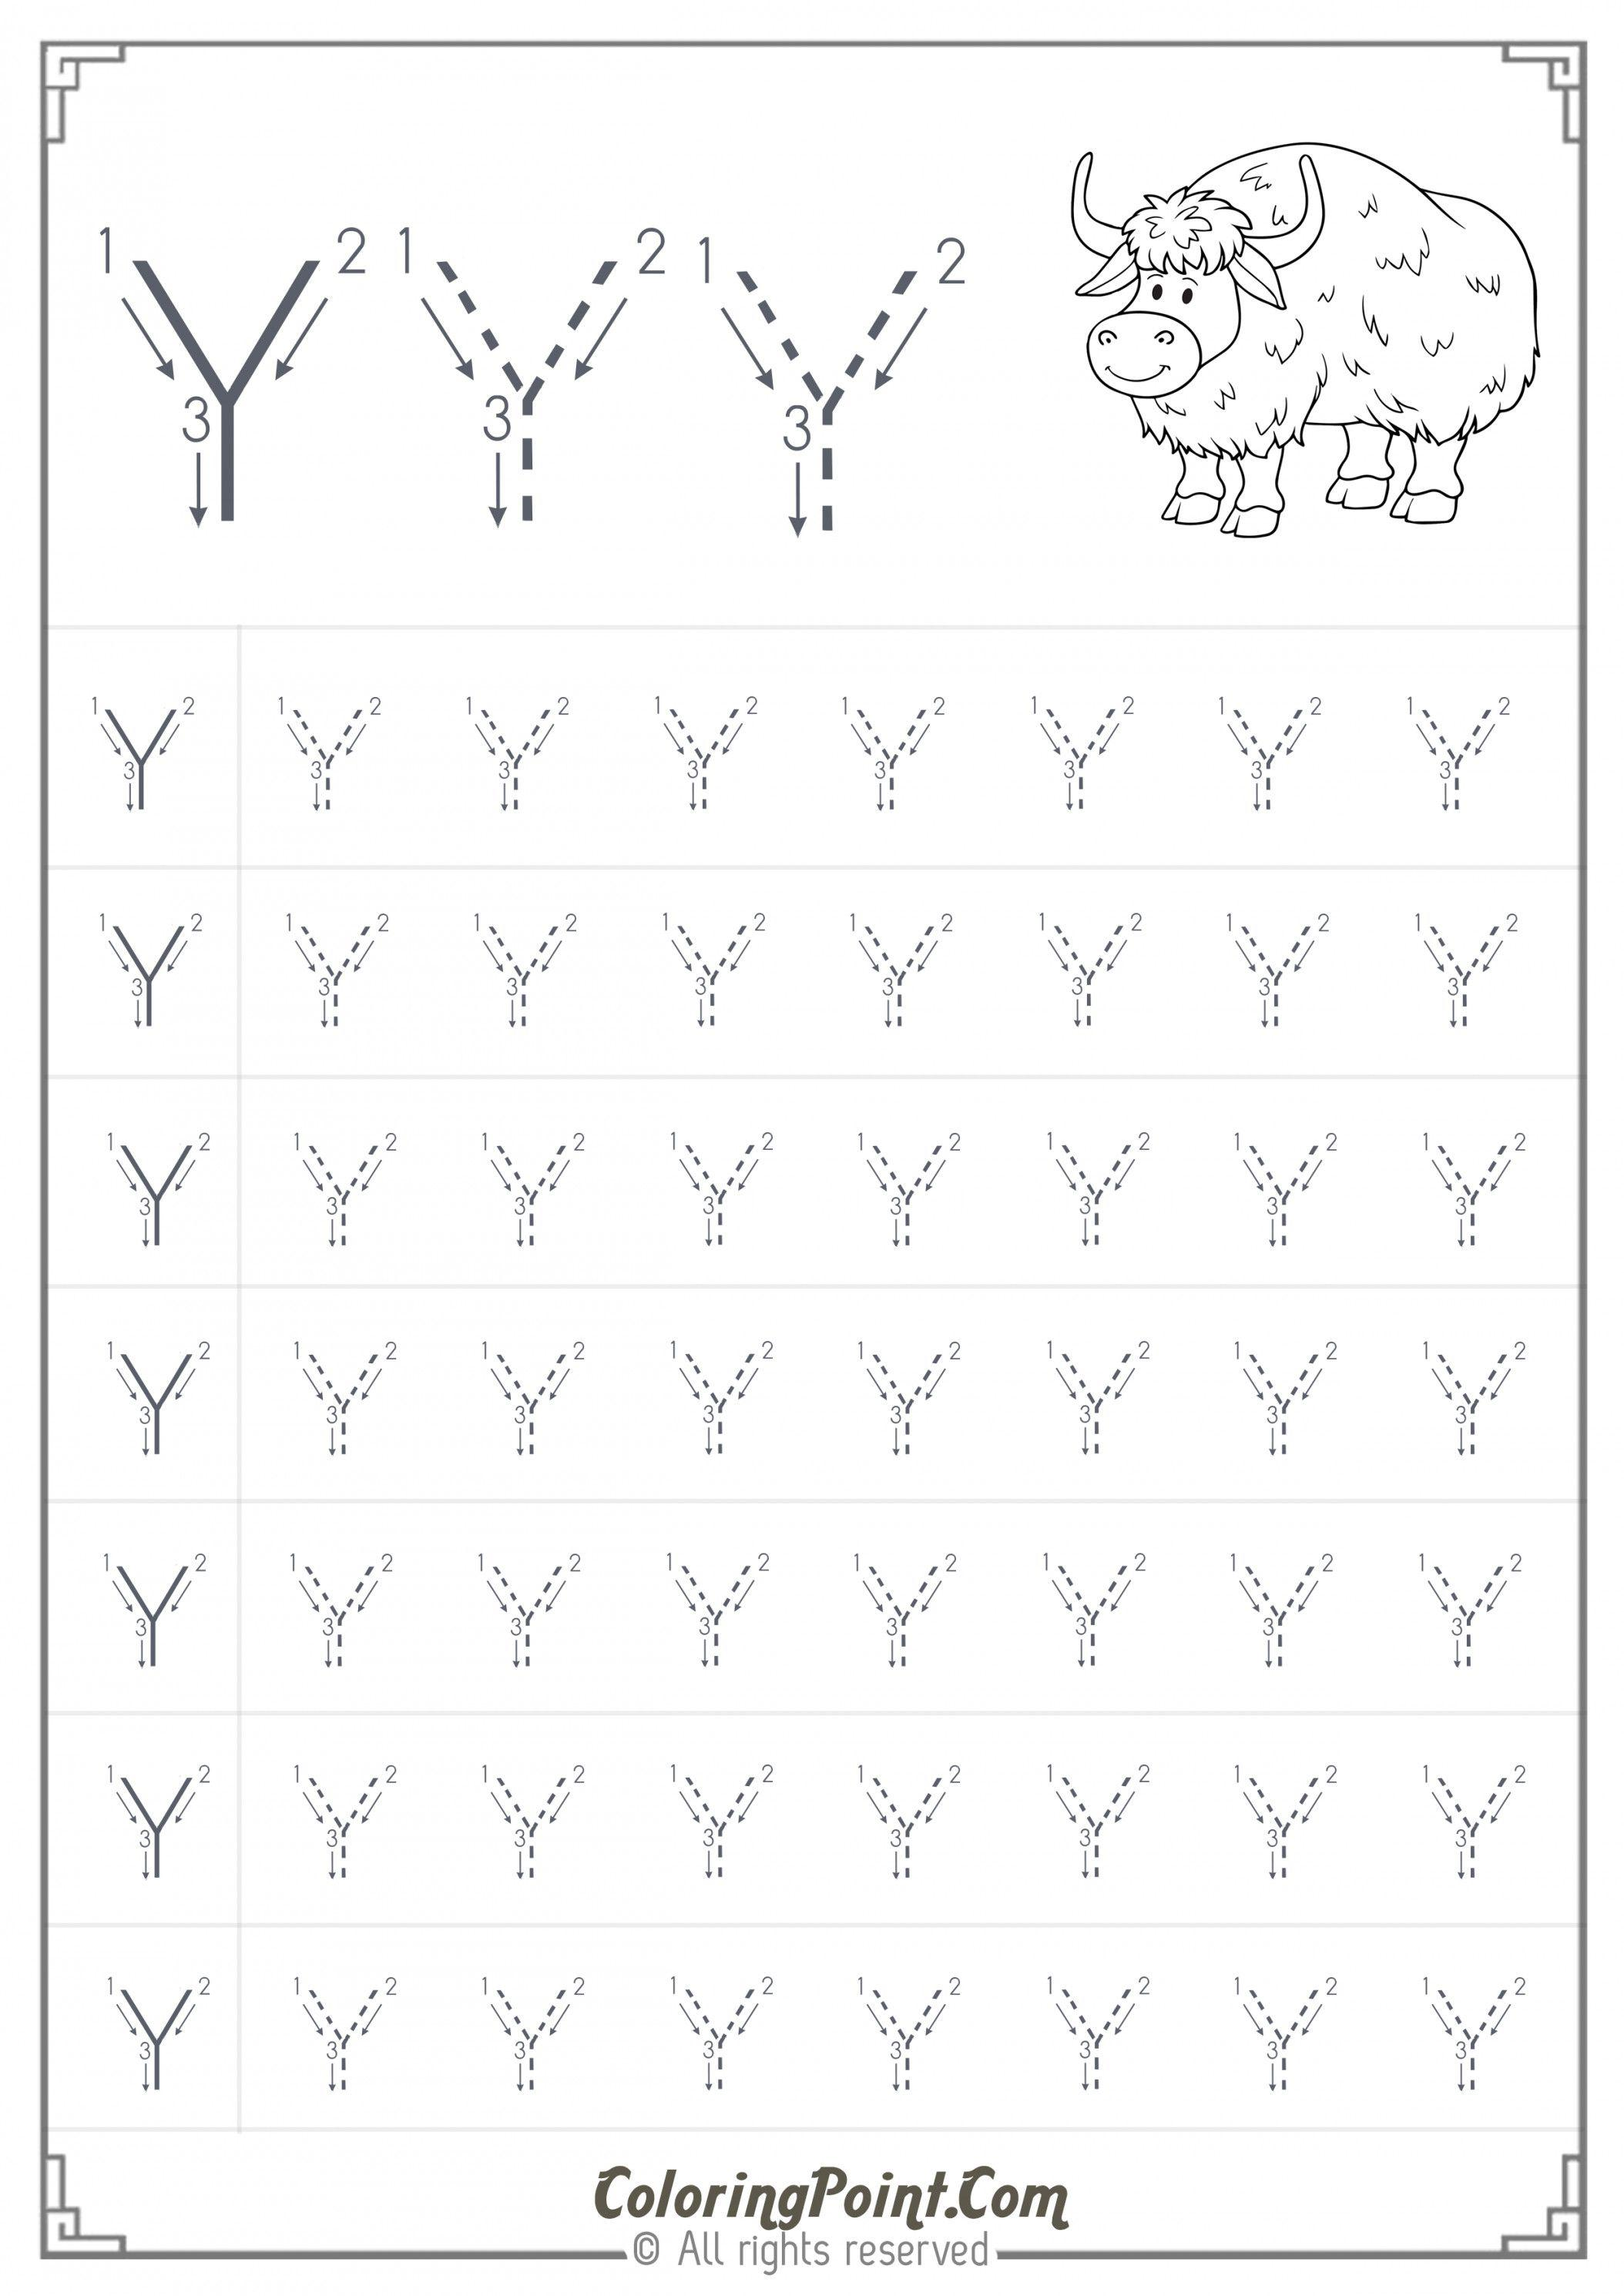 398 Worksheet Vector Images At Vectorified